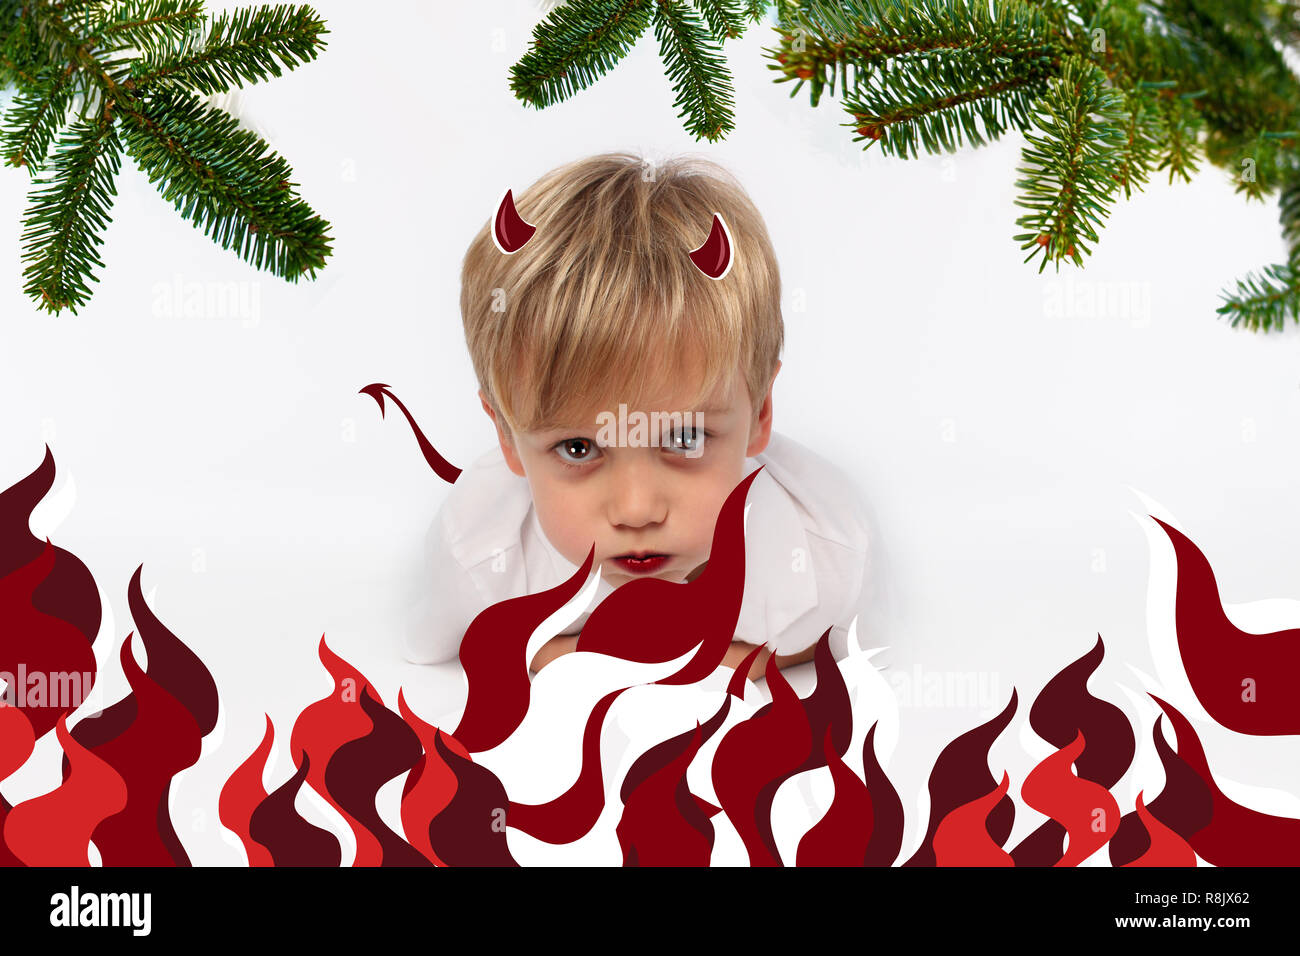 Naughty or good child for Christmas card? PF or letter to Santa-Claus for Christmas. Little child boy appearing as an adorable angelic devil Stock Photo